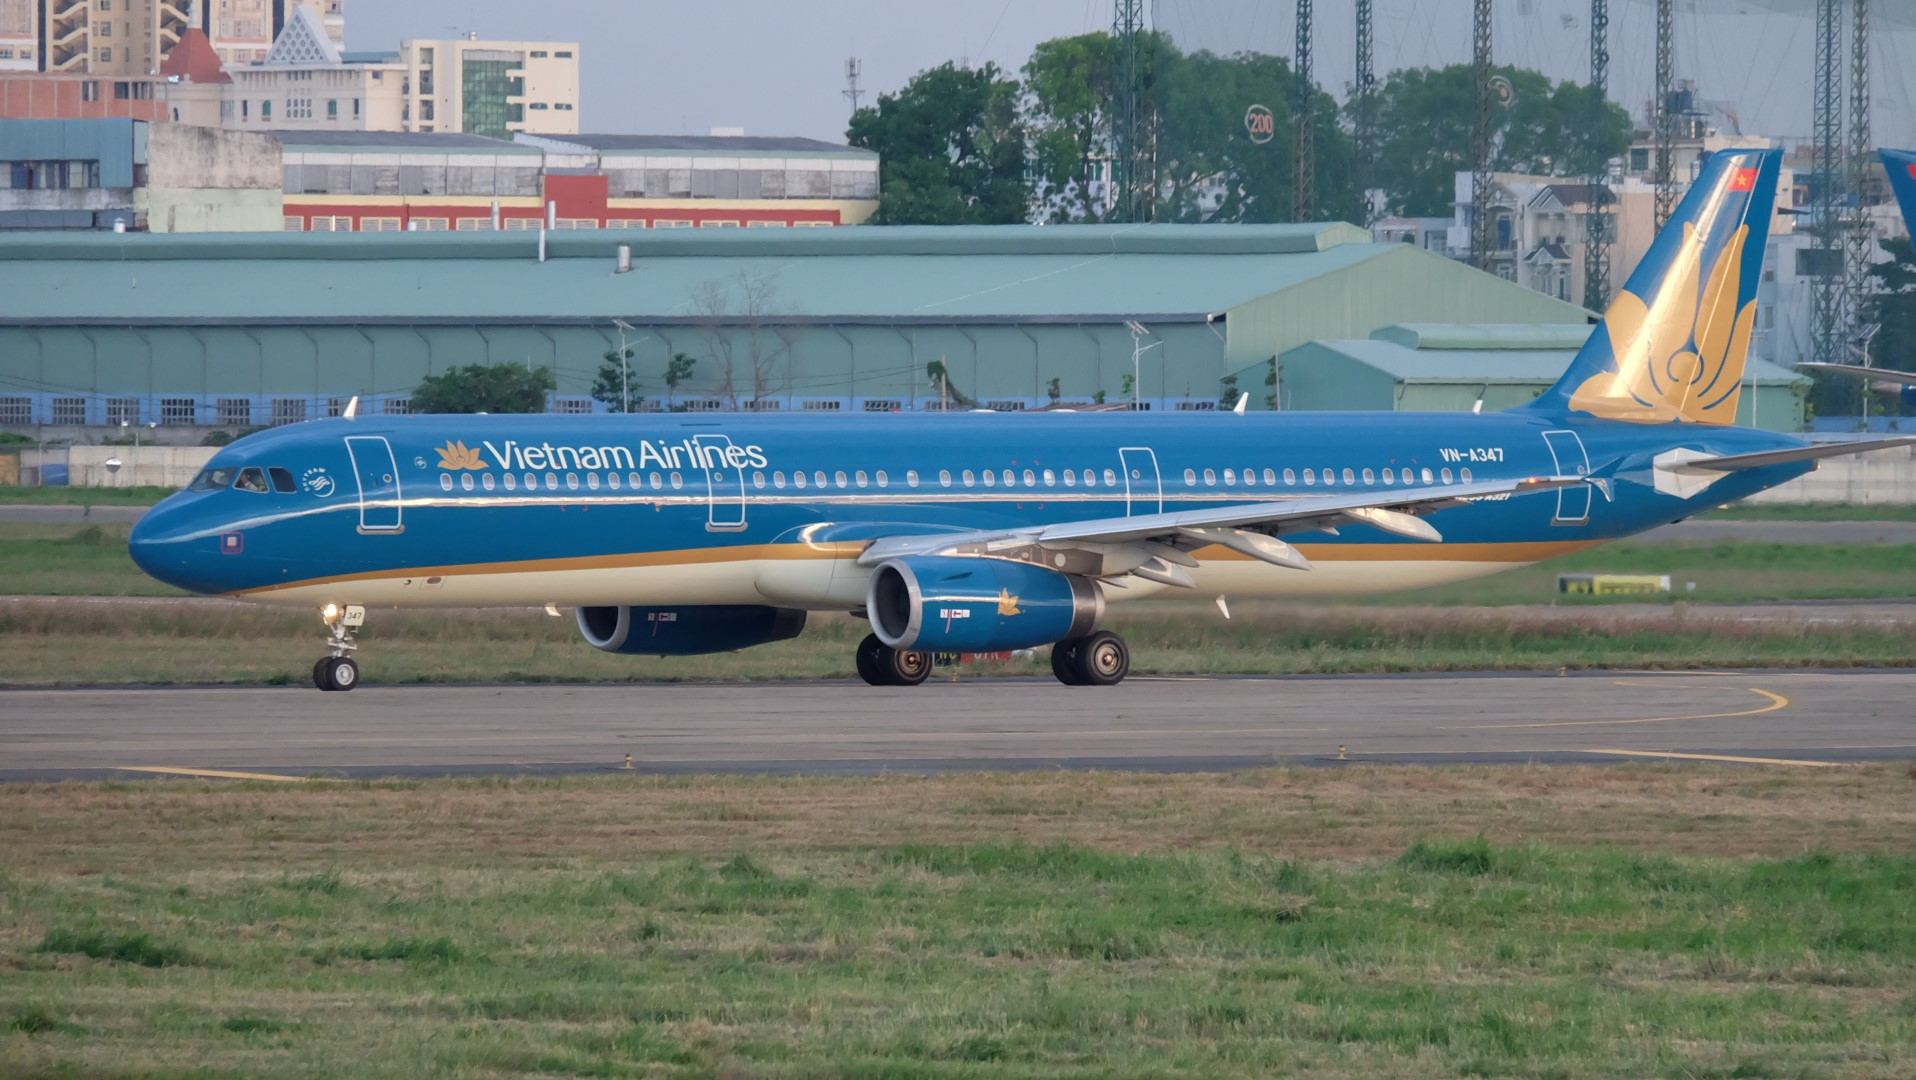 vietnam airlines mo rong hop tac ket noi viet - my hinh anh 1